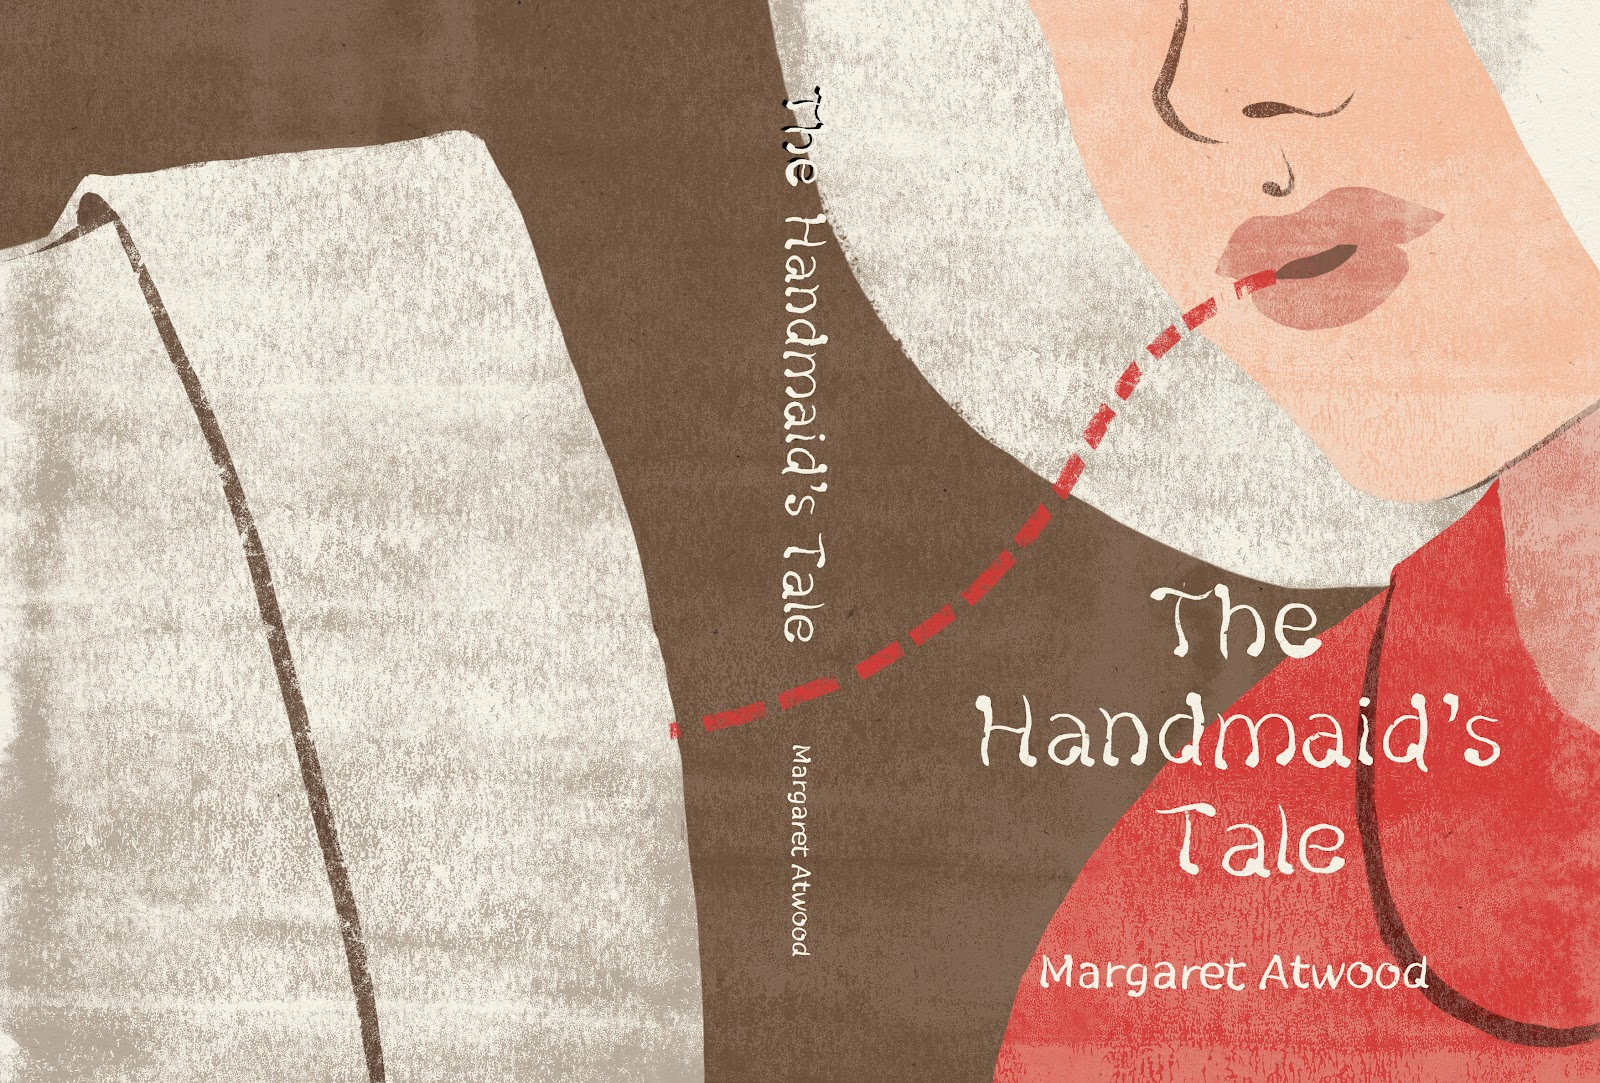 comprehensive analysis of the handmaids tale by margaret atwood